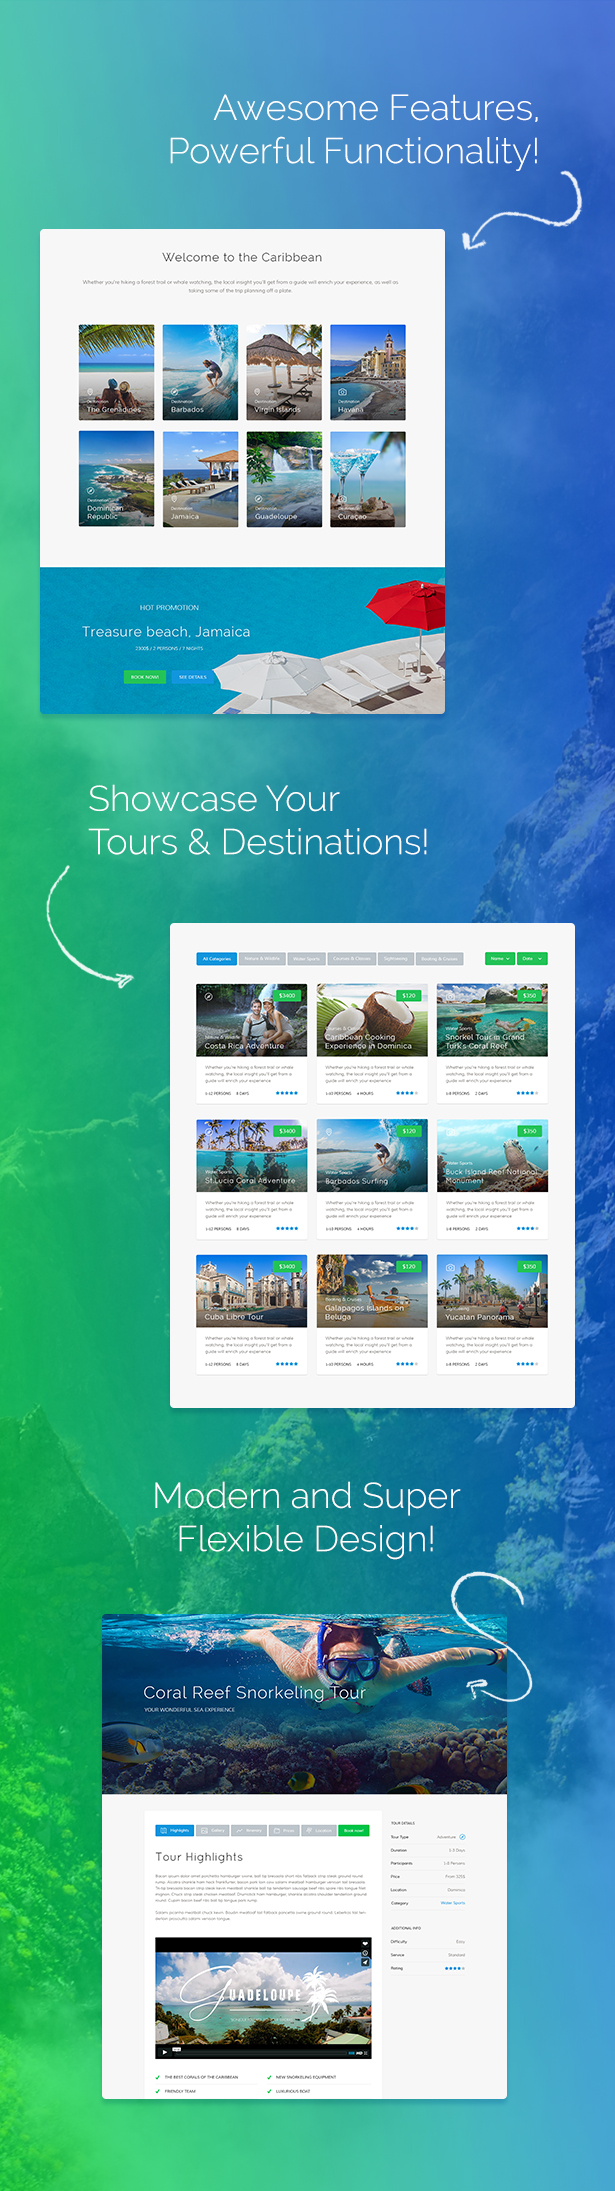 travel time4 - Travel Time - Tour, Hotel and Vacation Travel WordPress Theme